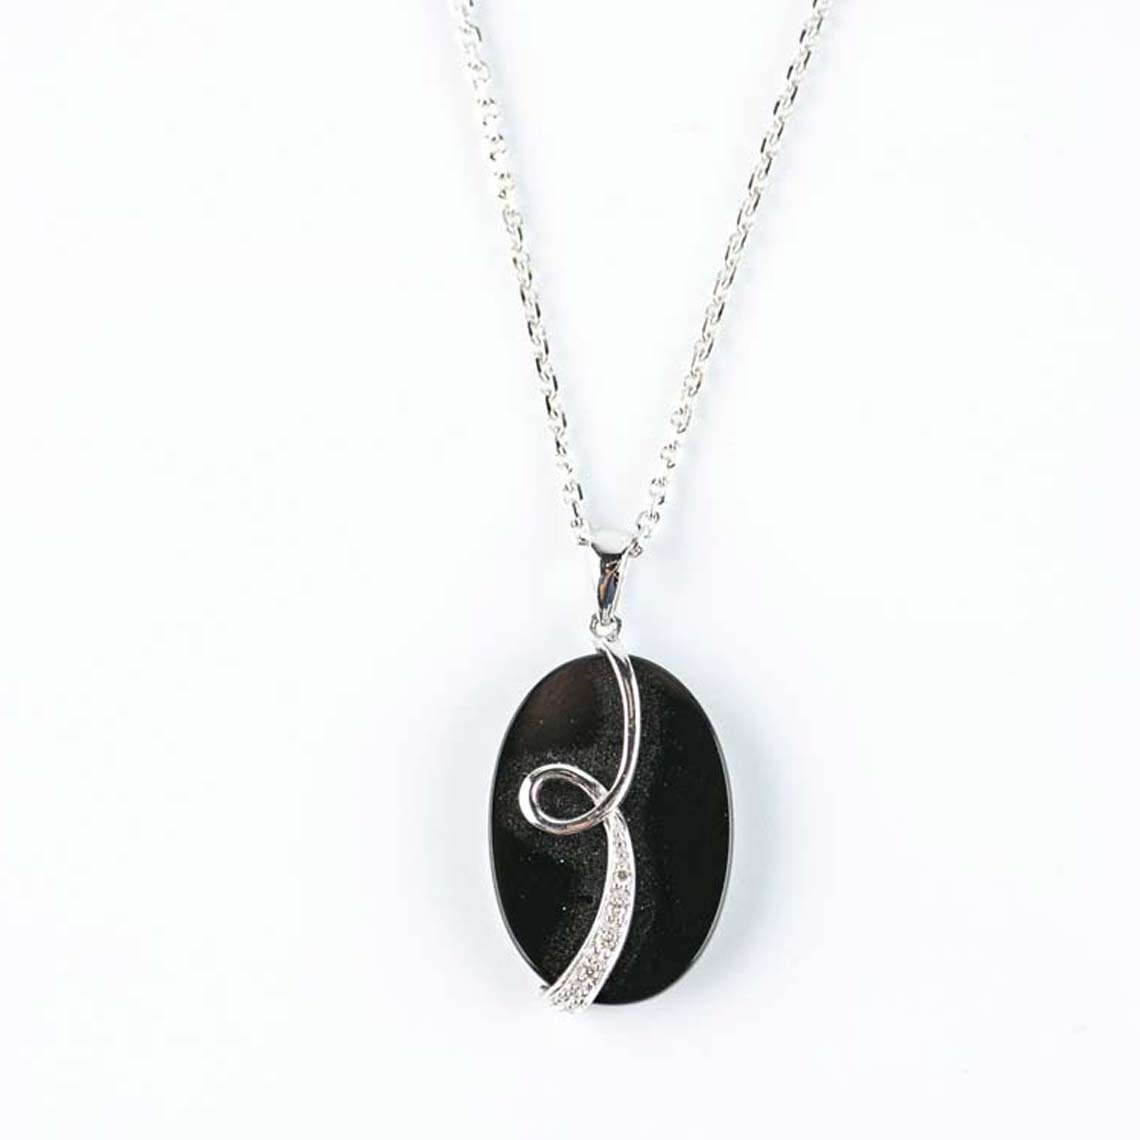 Onyx diamond pendant